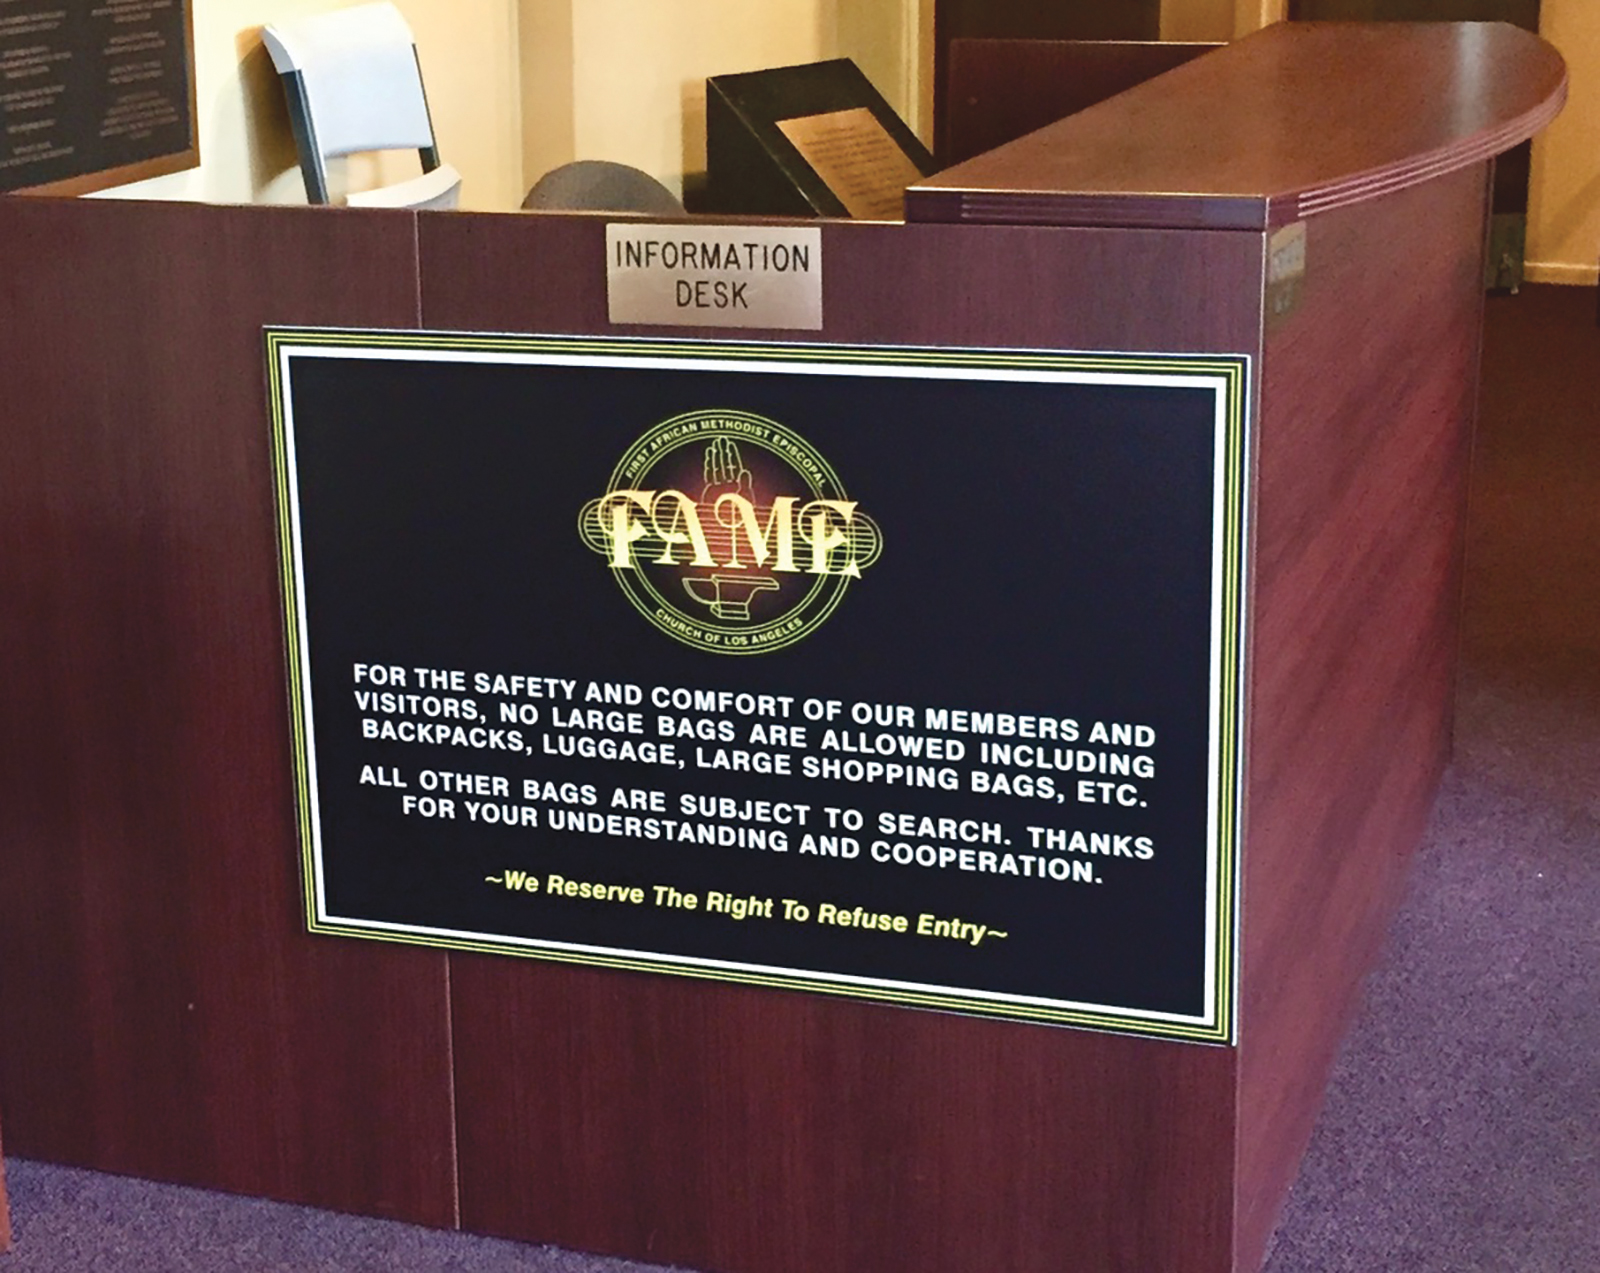 Photo By CBM: First African Methodist Episcopal Church FAME, the oldest church in Los Angeles founded by African Americans in 1872 posted signage at their information desk a few years ago because of attacks on houses of worship. Rev. J Edgar Boyd is the pastor of this church.